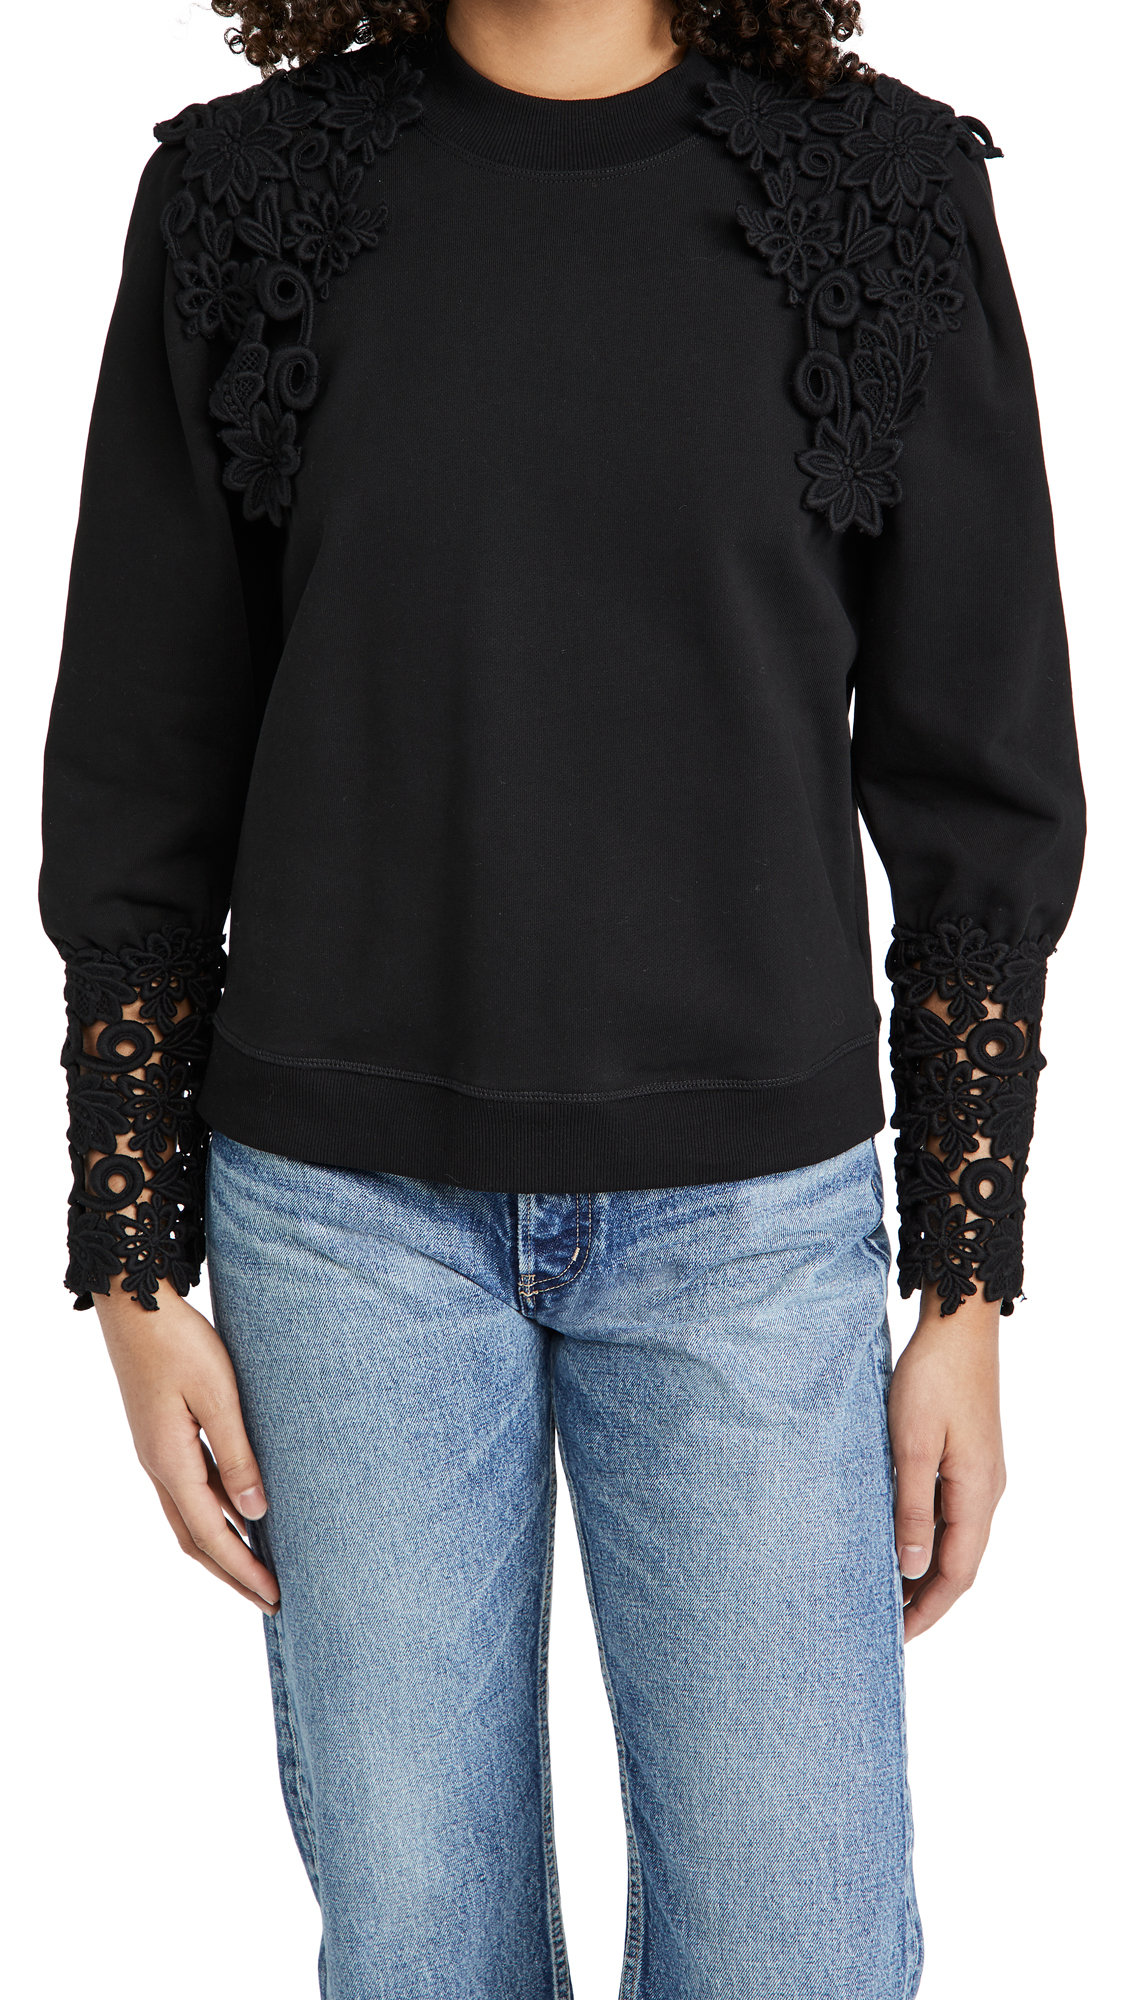 Sea Lace Applique Sweatshirt